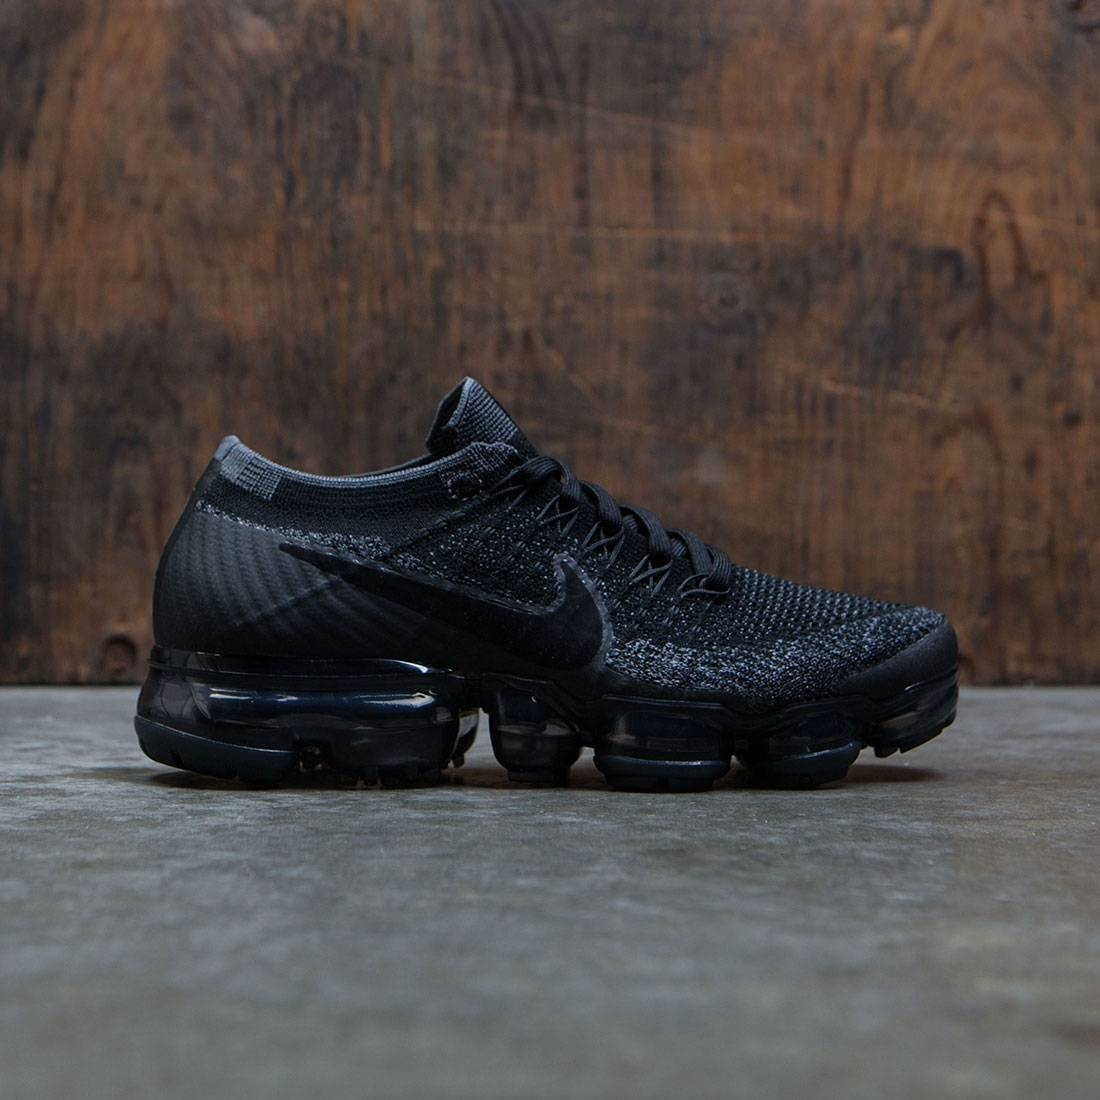 sale retailer f9743 cb3af Nike Women Air Vapormax Flyknit Running (black / anthracite-dark grey)